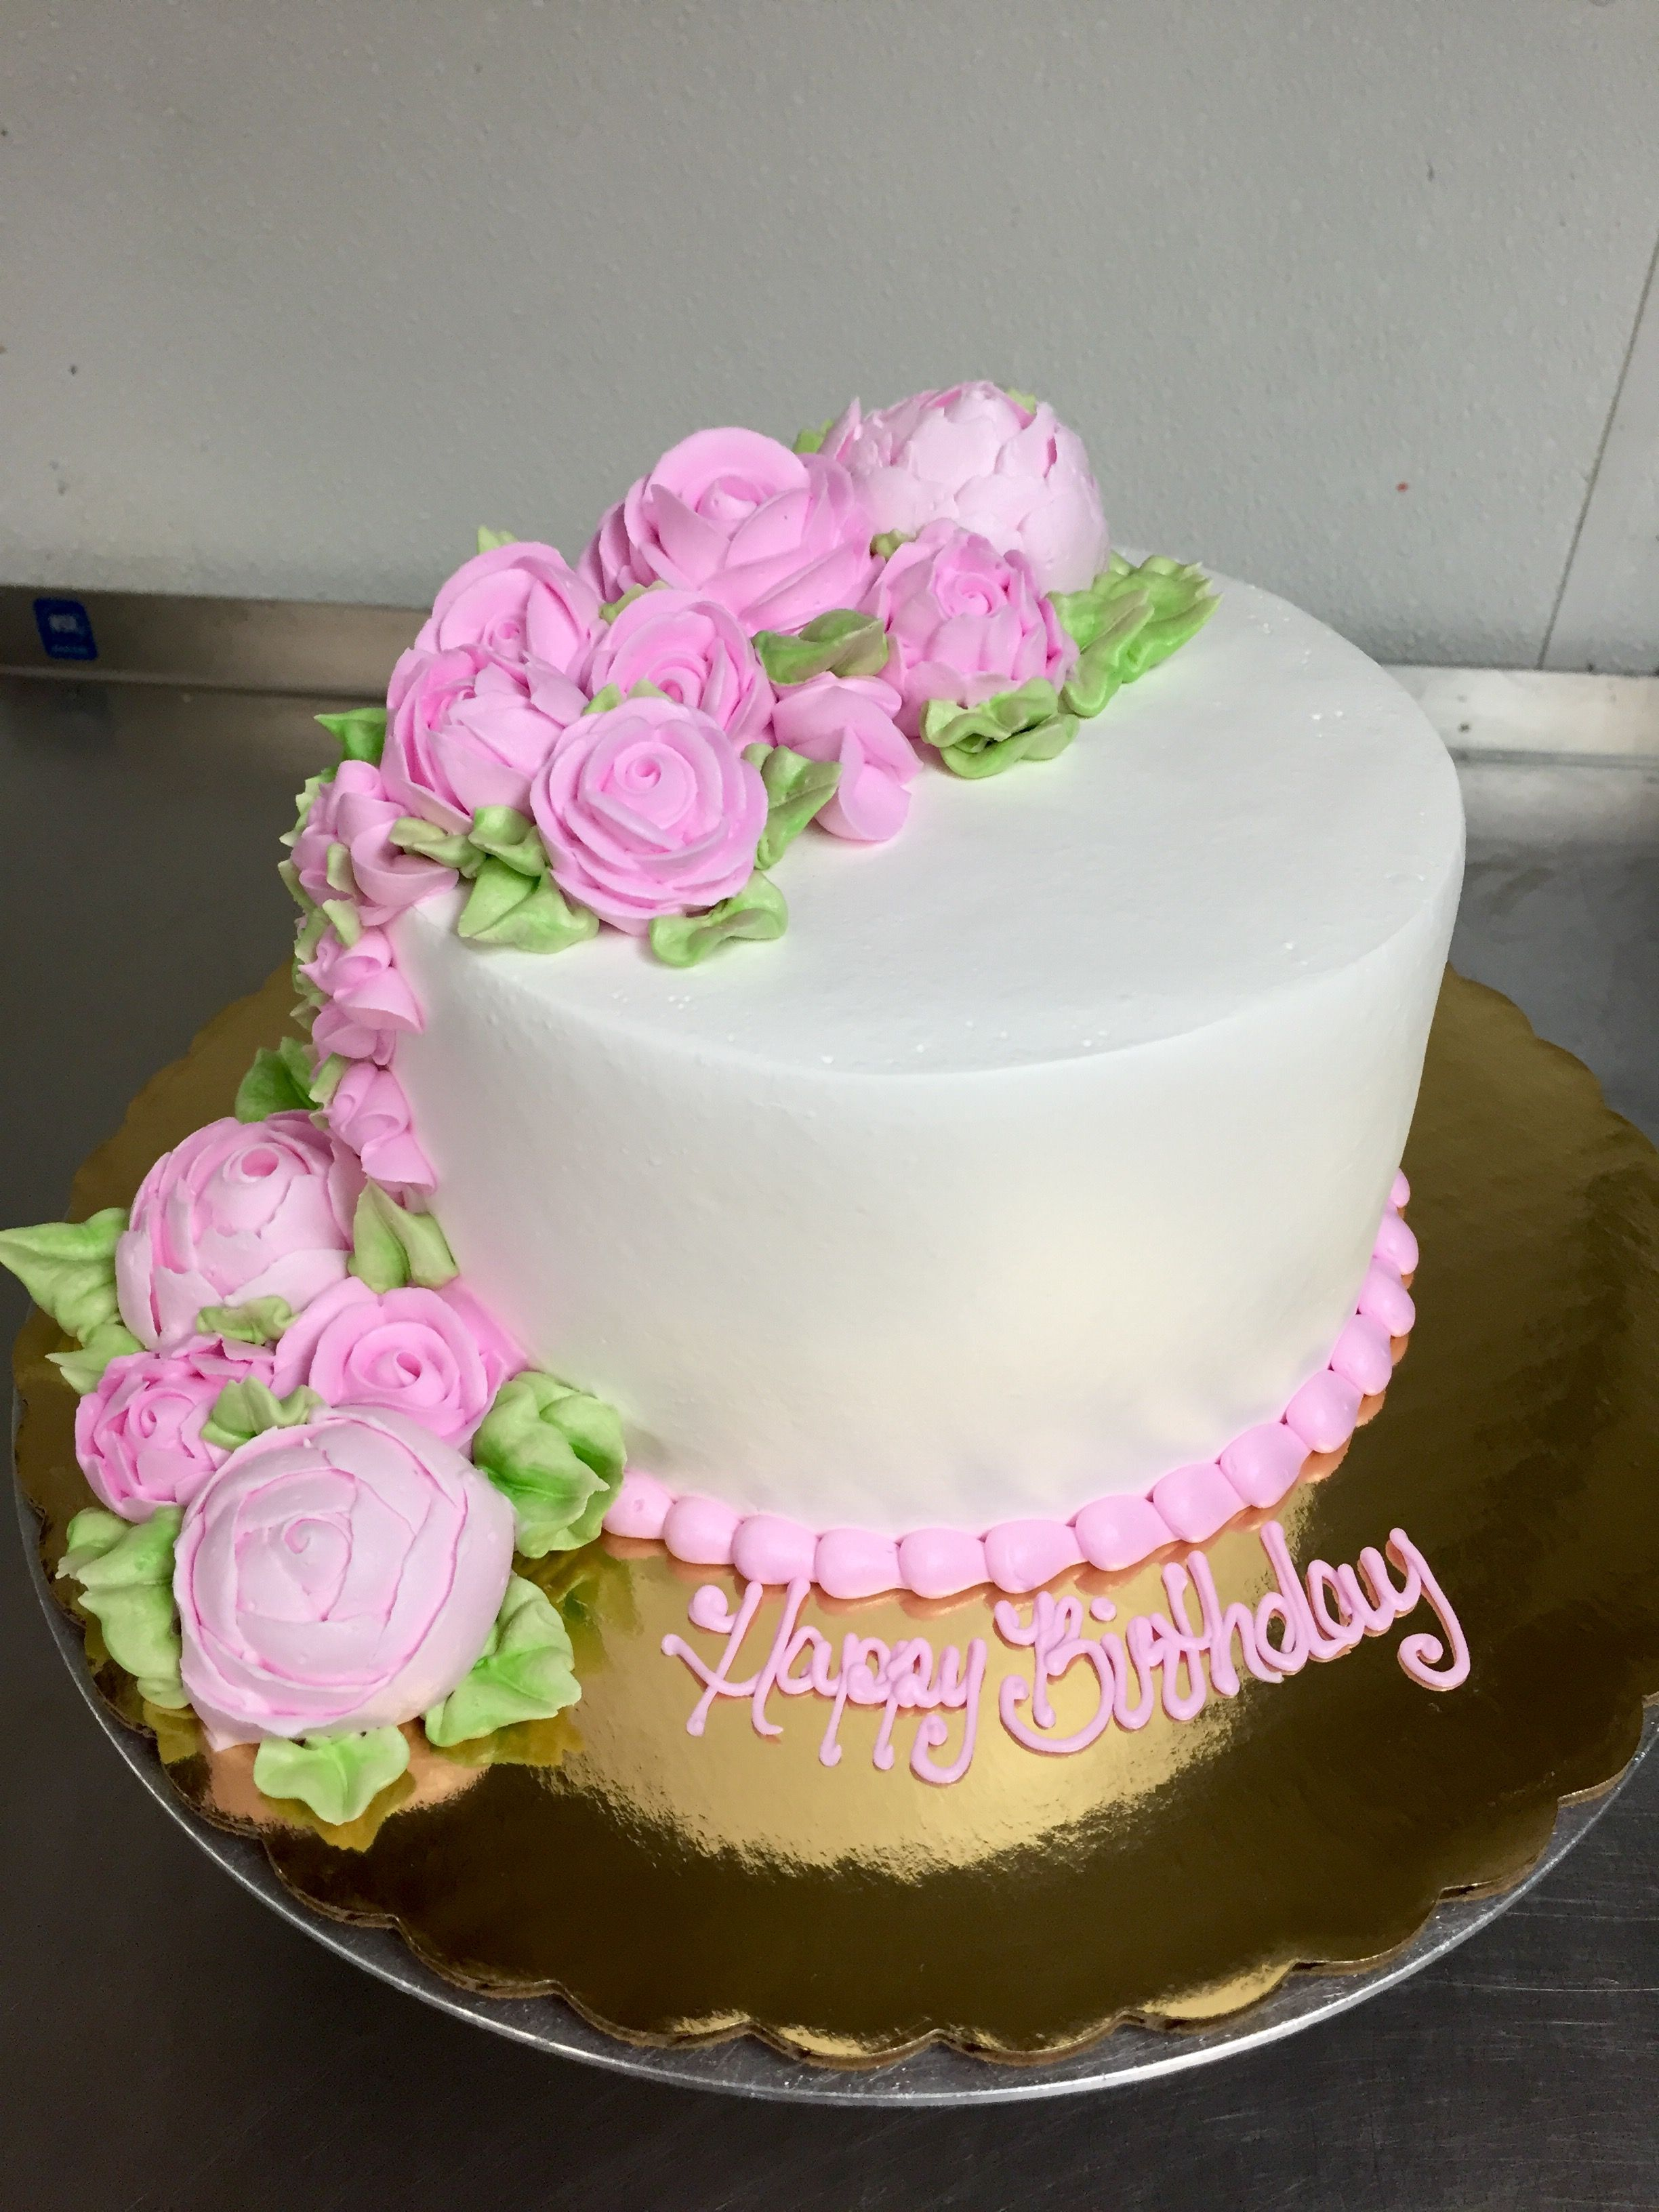 Buttercream Floral Cascade Cake | Cakes by Lauren at Alessi Bakery ...